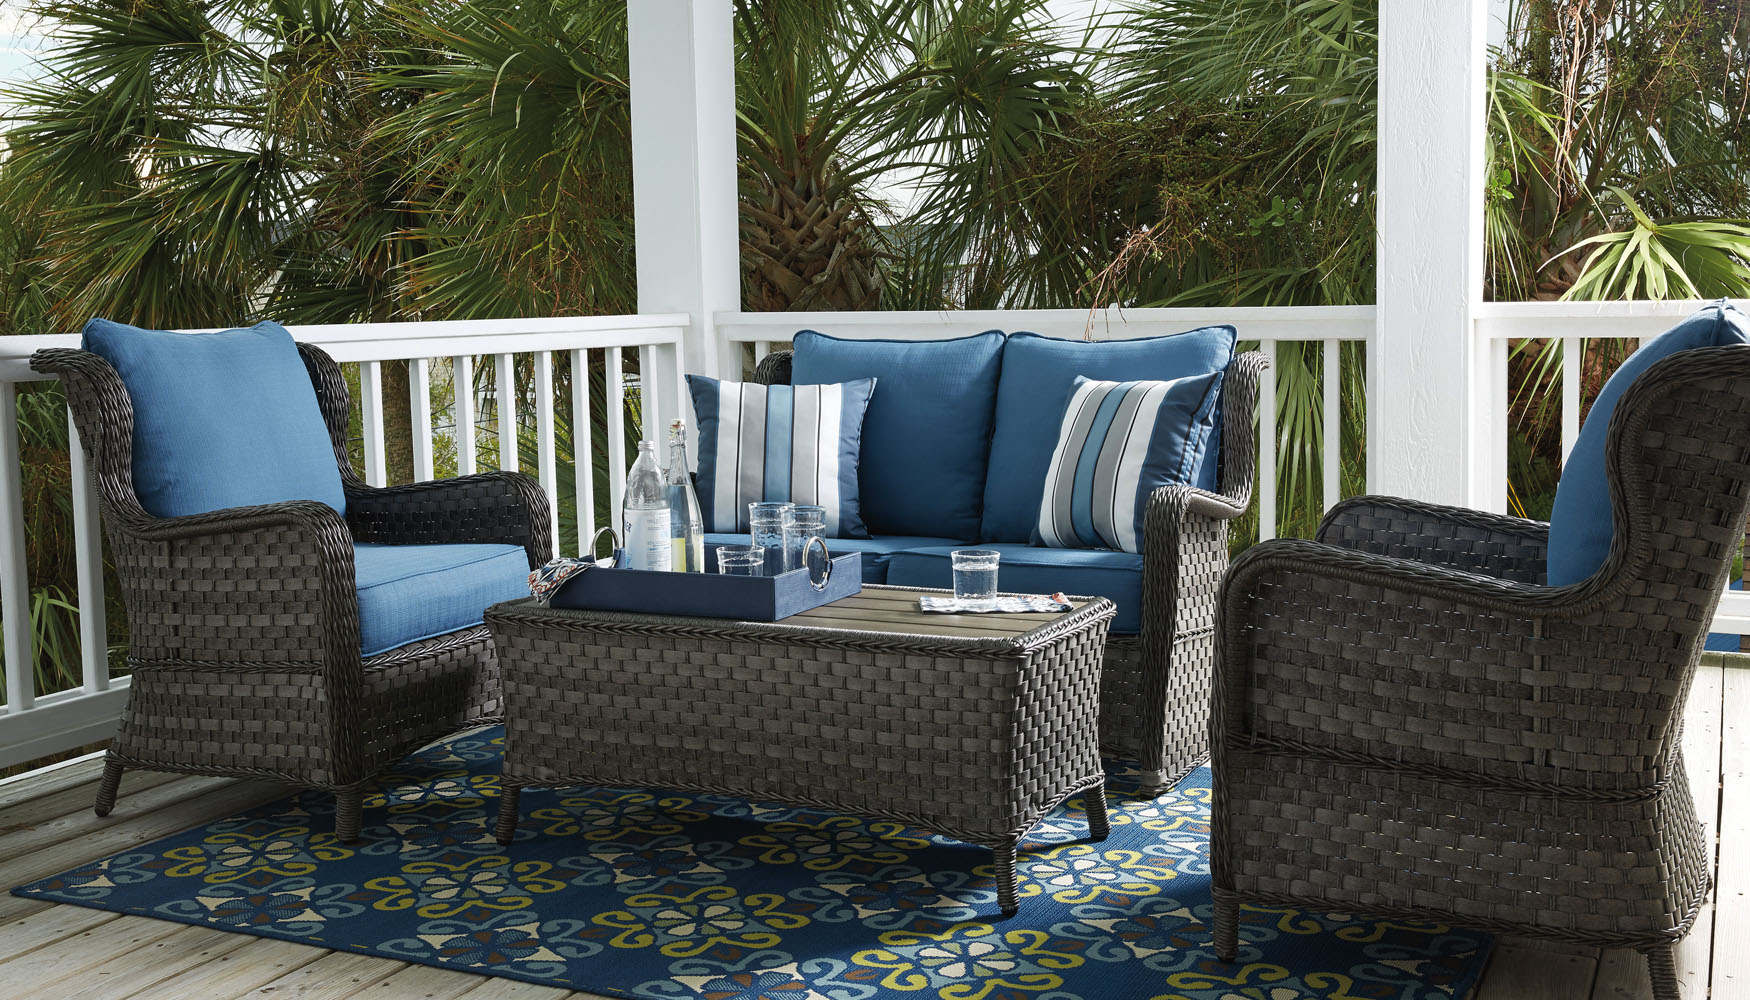 Patio Furniture In Our Furniture Store In Valdosta Bed R Mattress